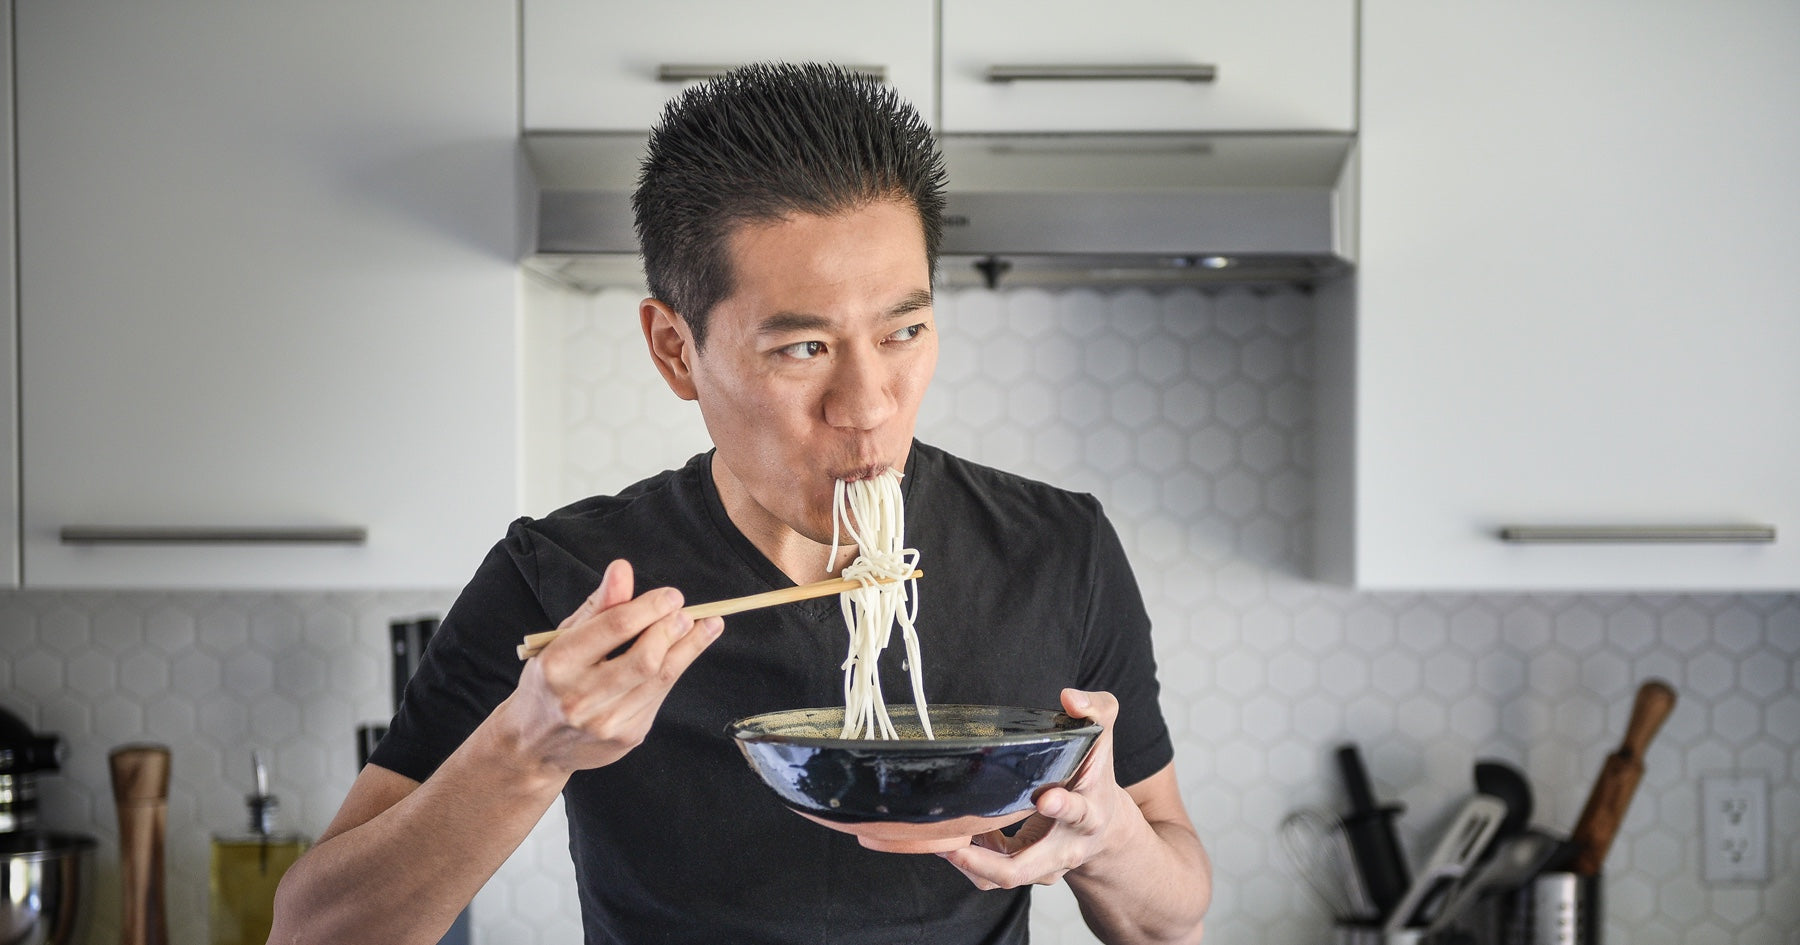 Portrait of Wil Yeung, YouTube chef and serial entrepreneur, eating a bowl of noodles